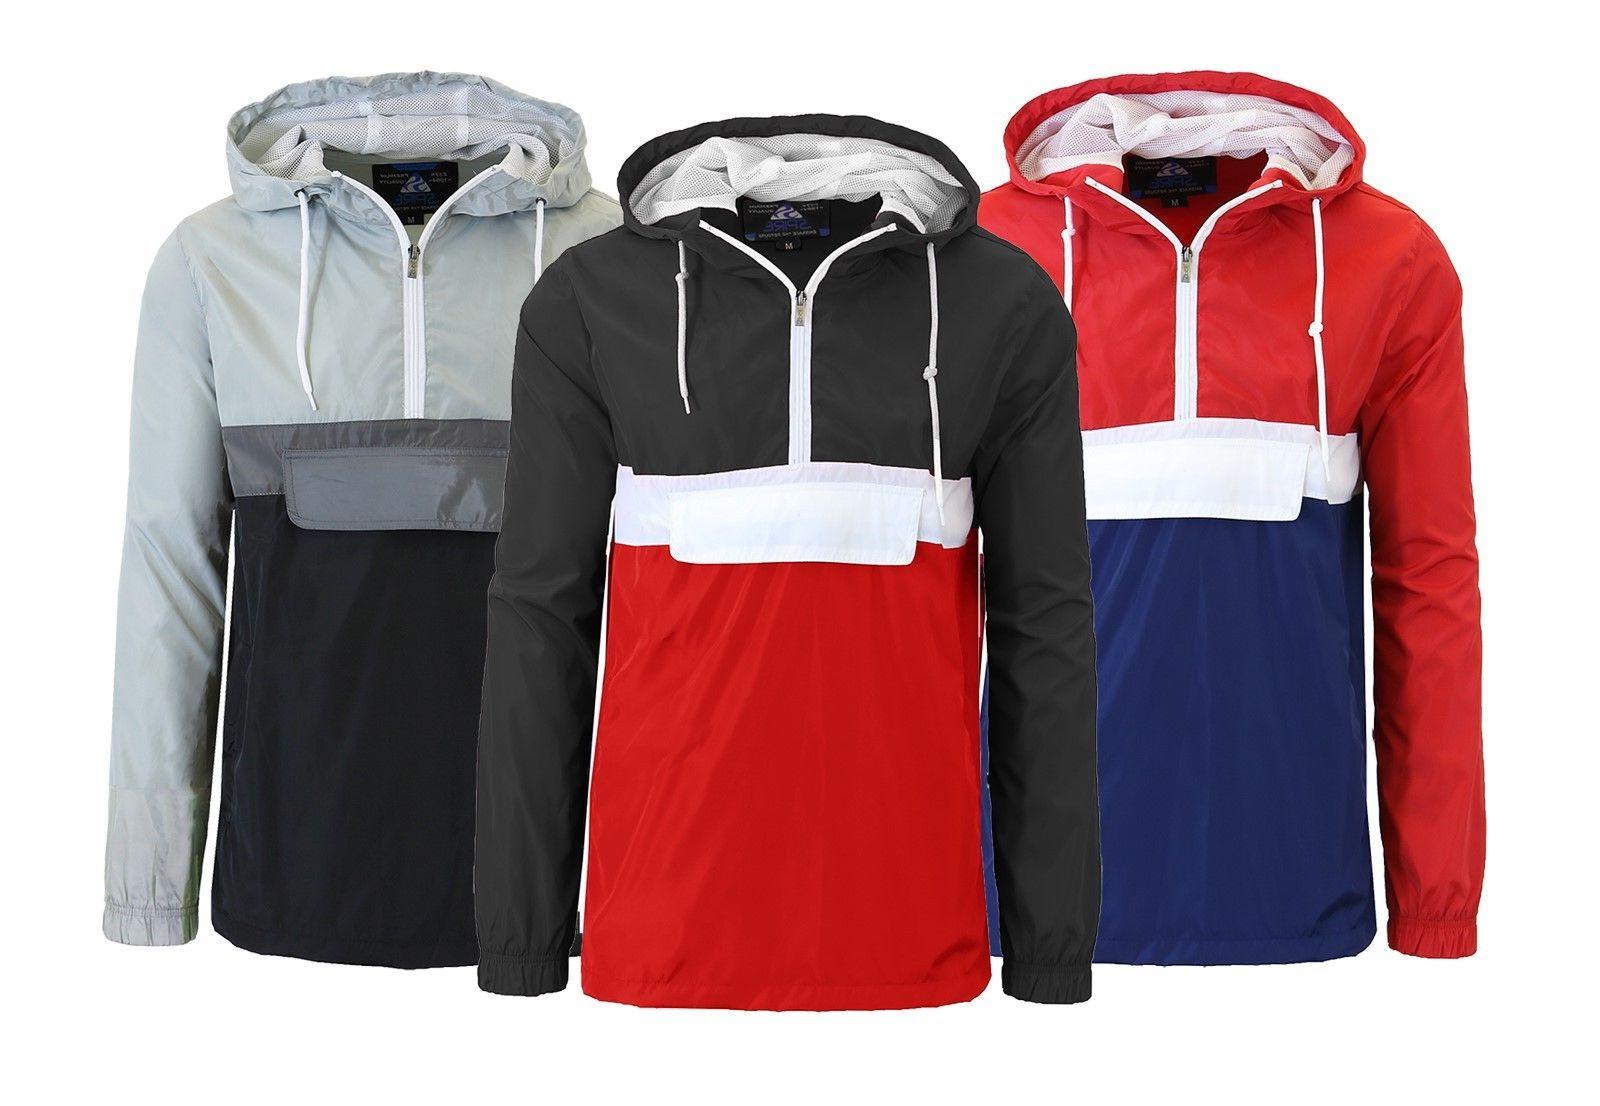 Mens Lightweight Windbreaker Jackets Pullover Zipper Pockets